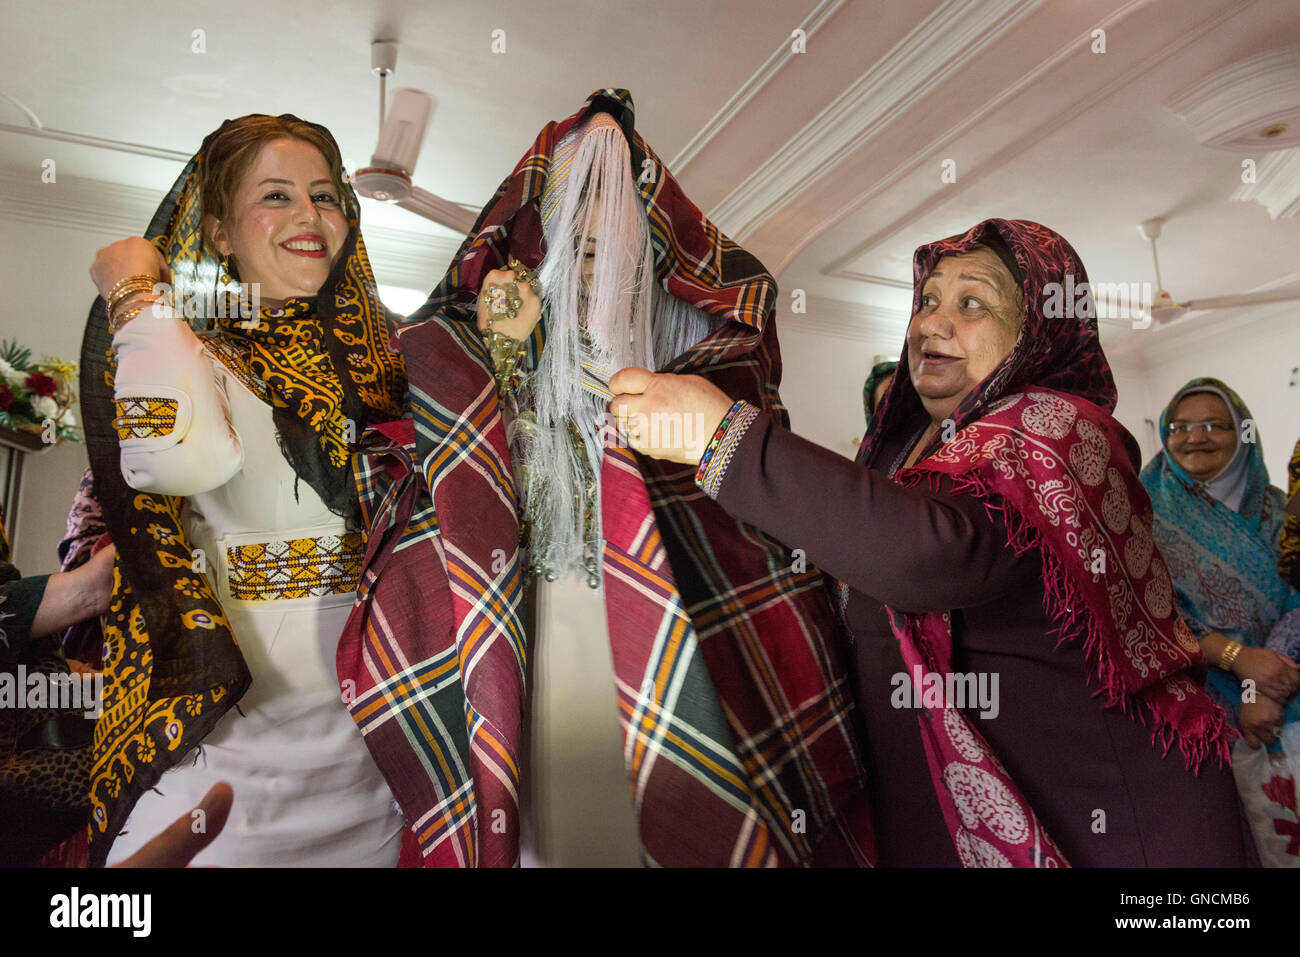 Bandar Torkaman, Turkmen Wedding, Bride Covered With Traditional Veil With Relatives In Ladies' Room - Stock Image